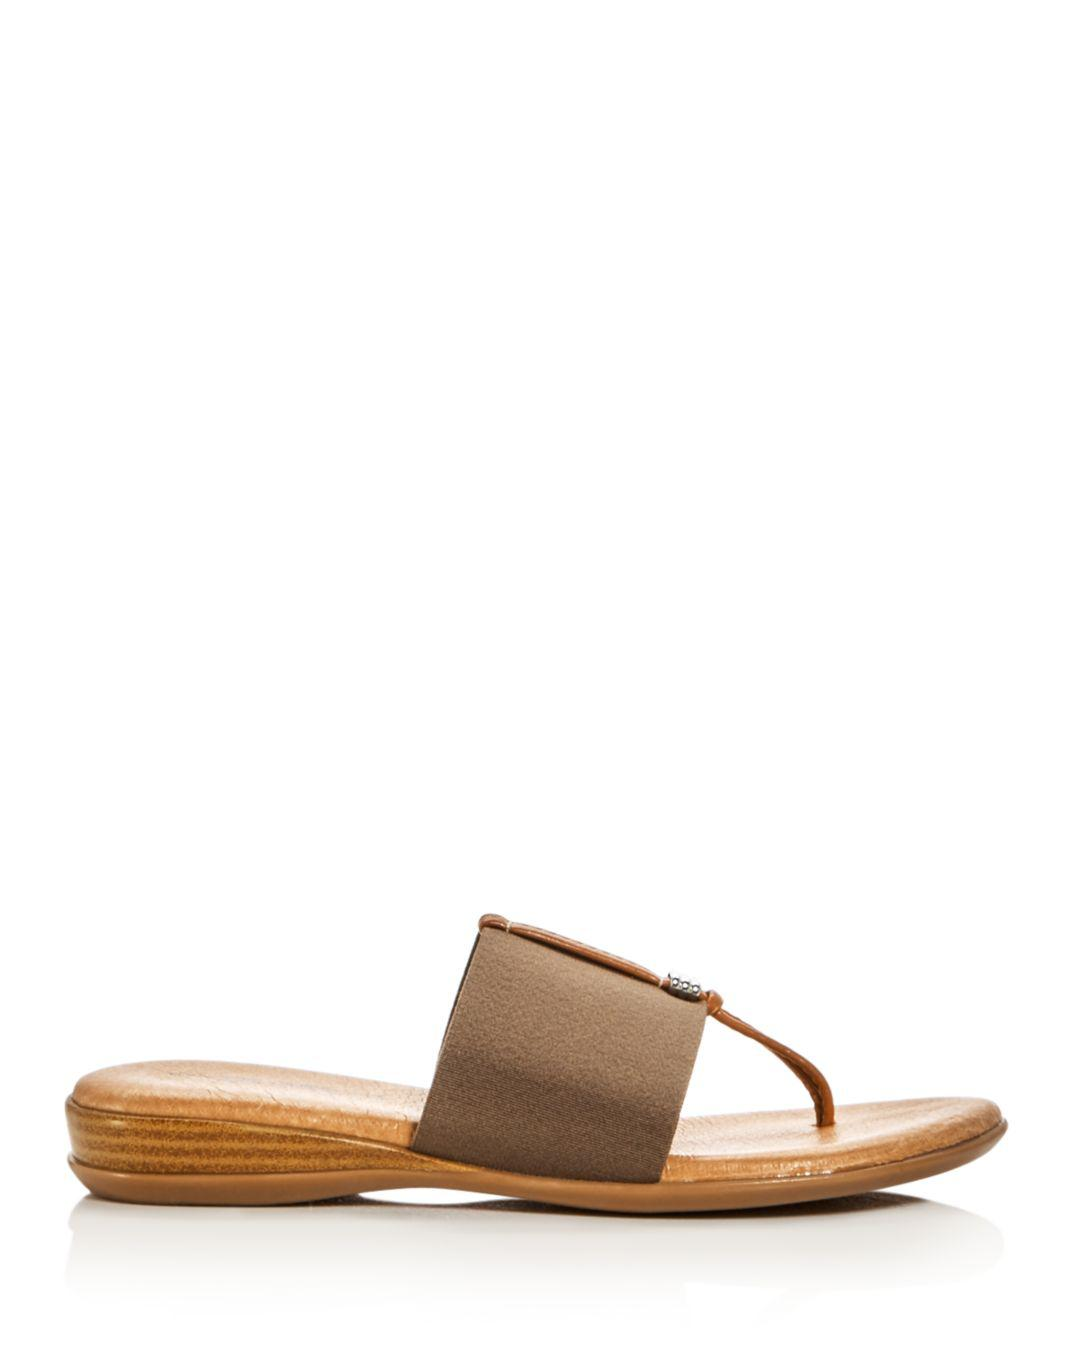 d504ab533099 Lyst - Andre Assous Nice Thong Sandals in Brown